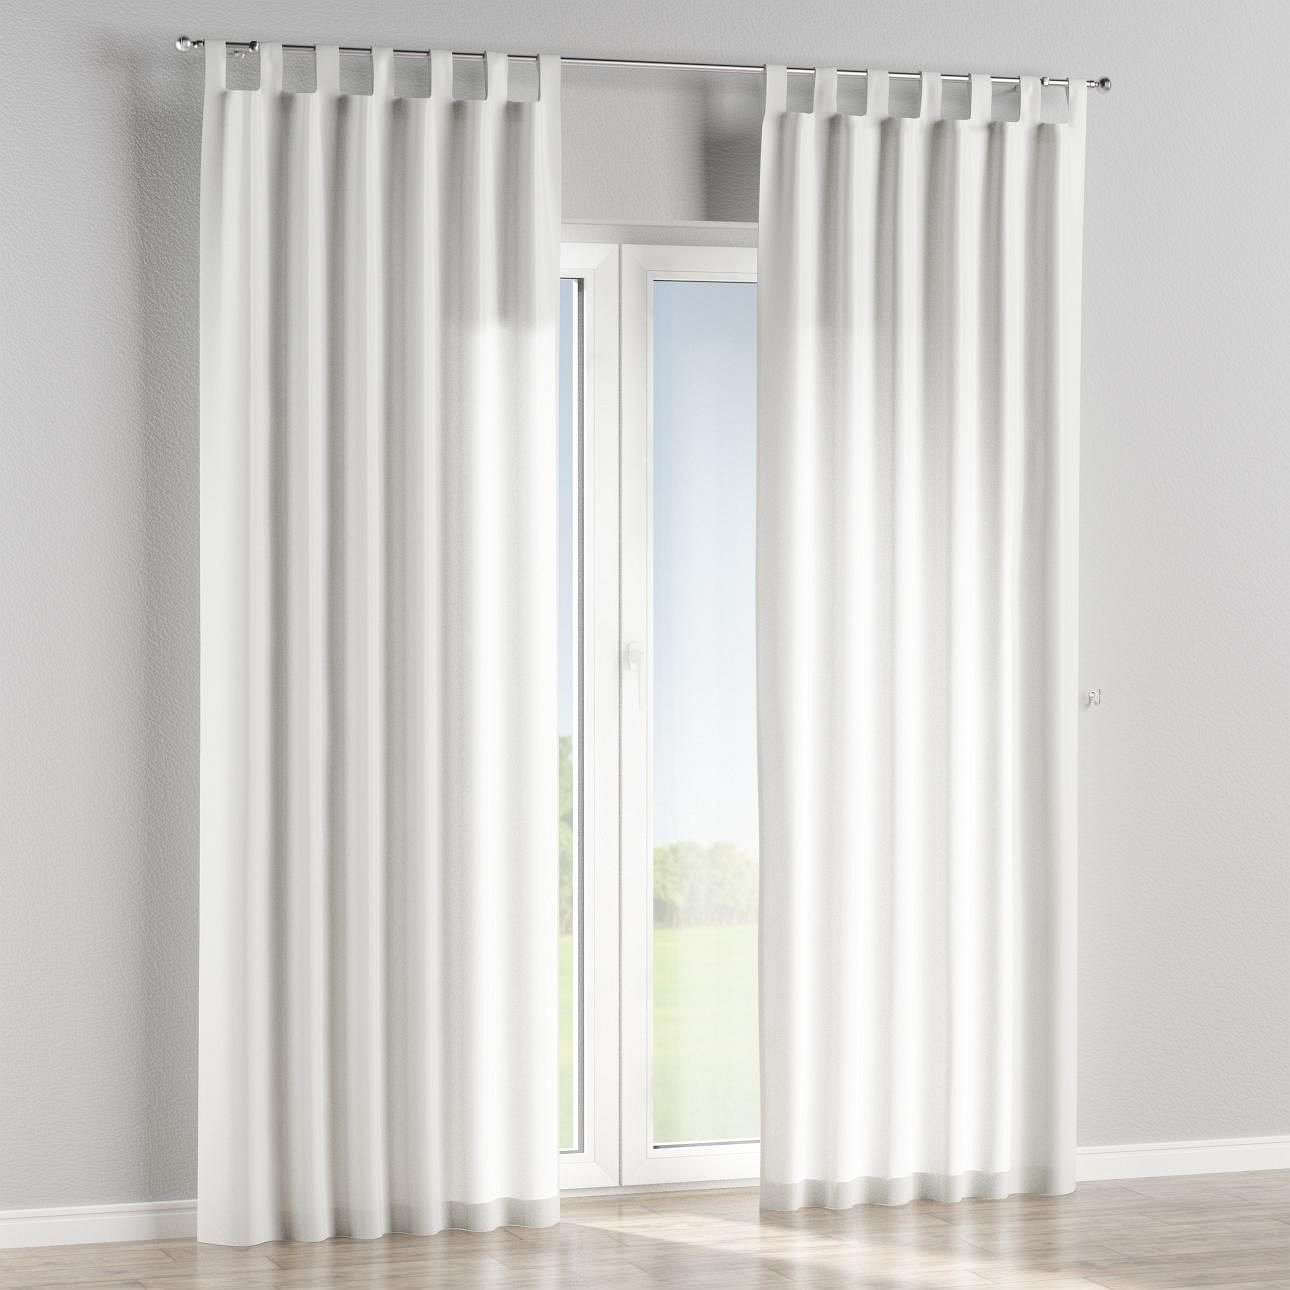 Tab top lined curtains in collection Cardiff, fabric: 136-23